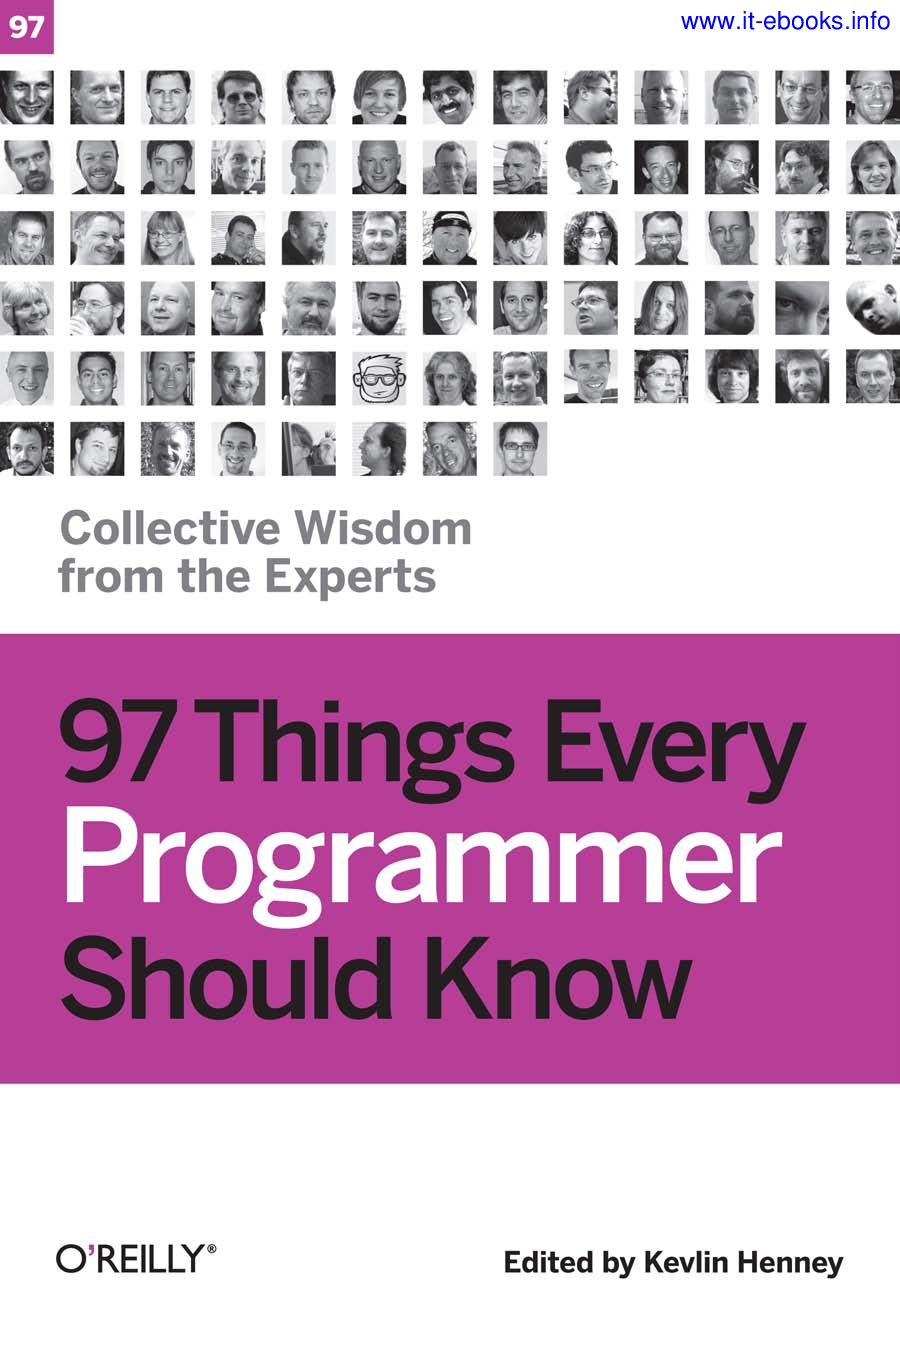 97 Things Every Programmer Should Know - Kevlin Henney